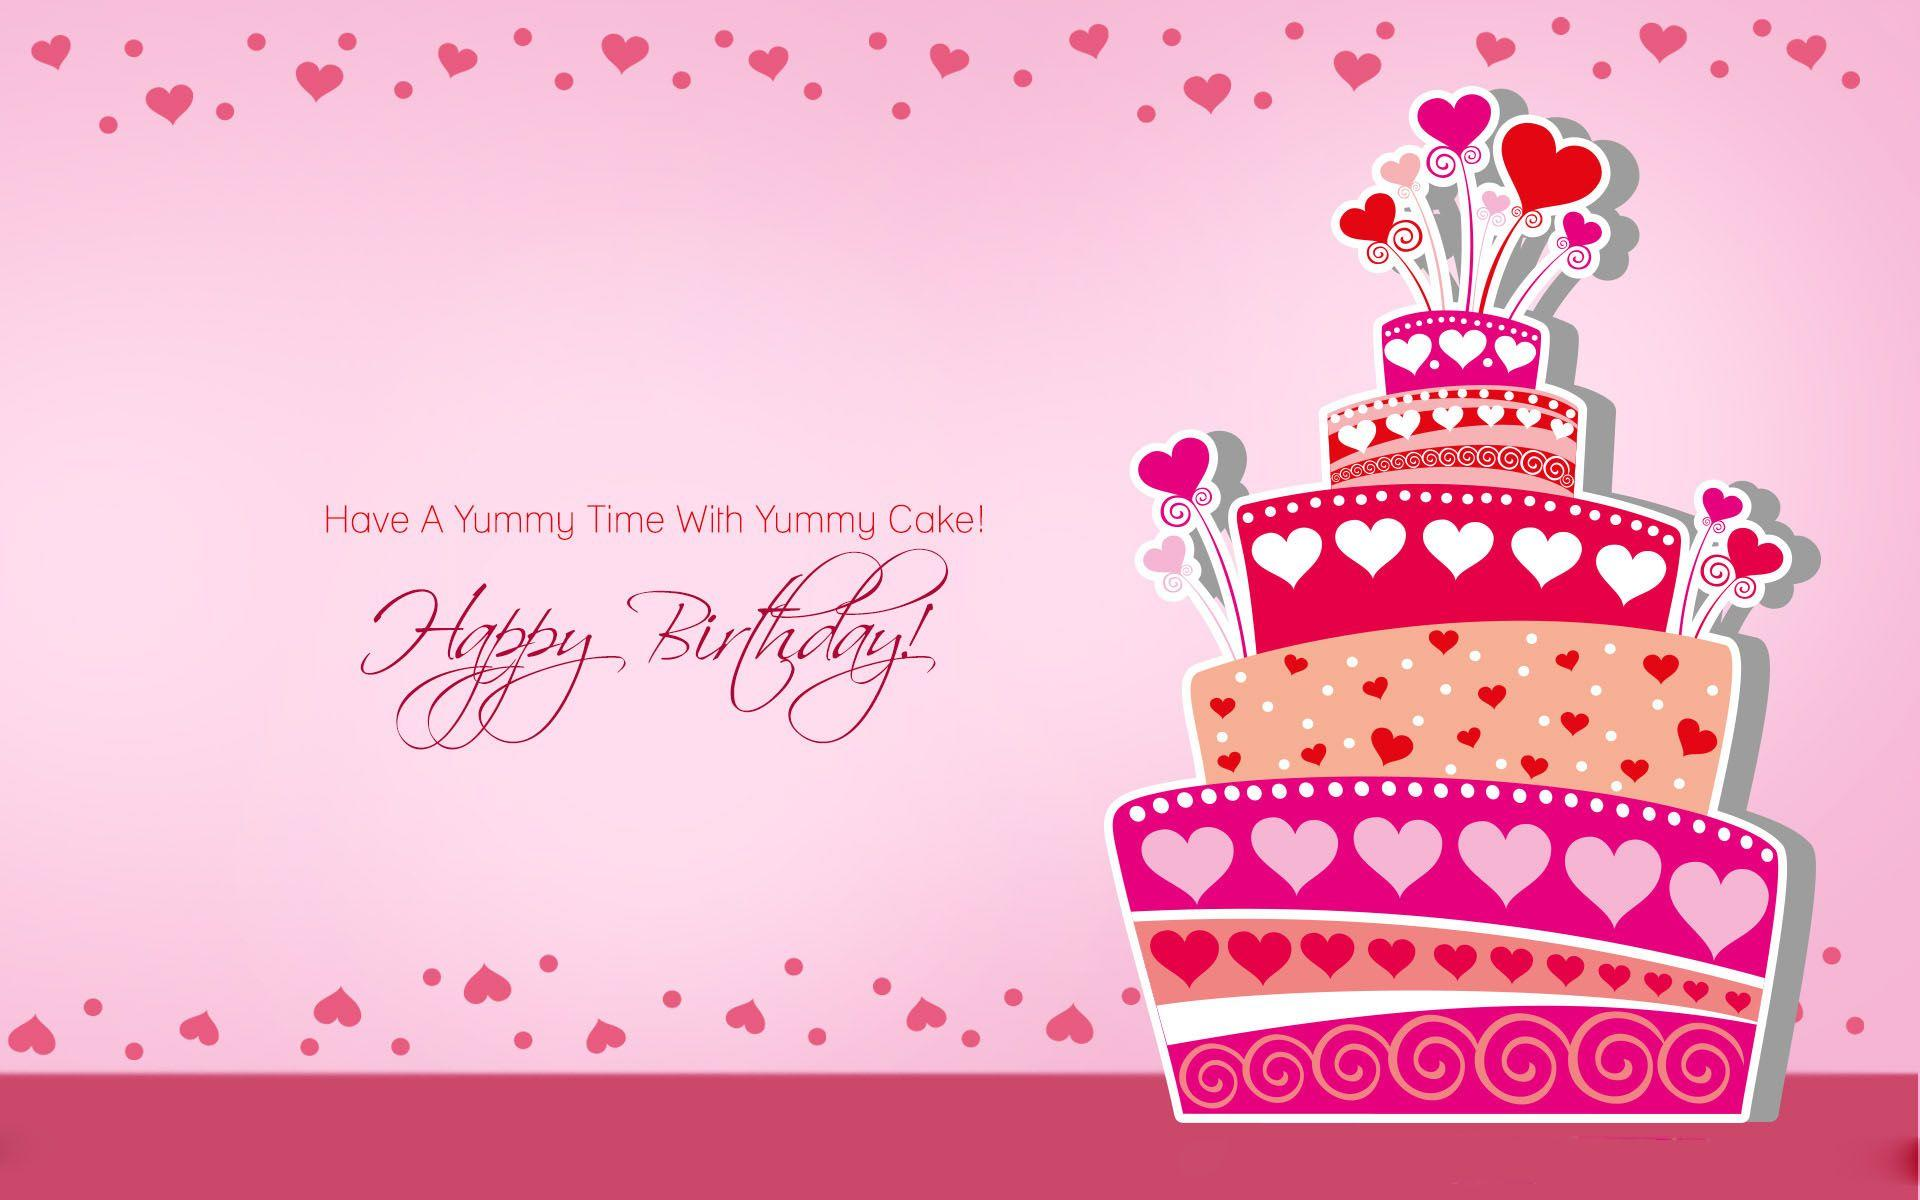 Happy Birthday Wallpapers Image - Wallpaper cave